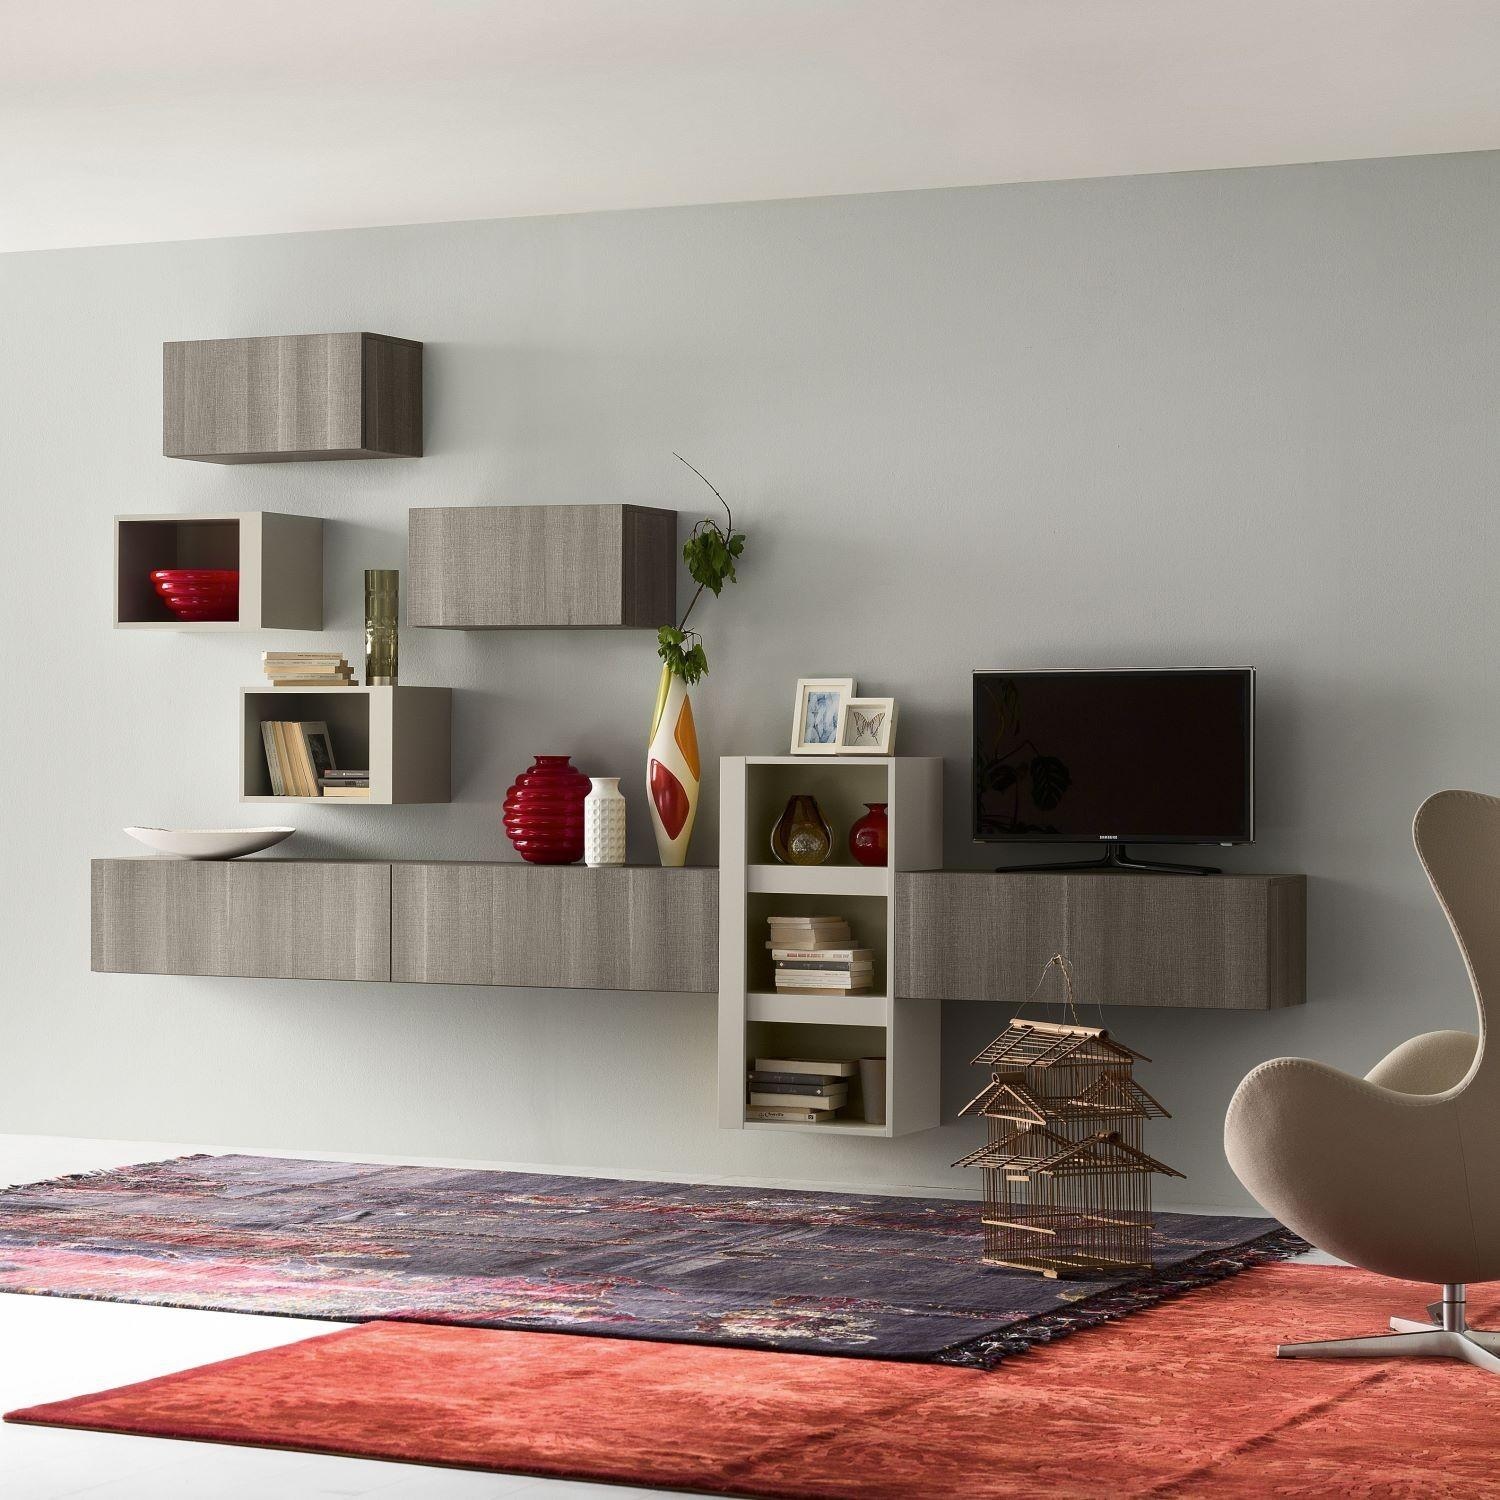 Inviting Modular Wall Unit Design Inspiration Exposing